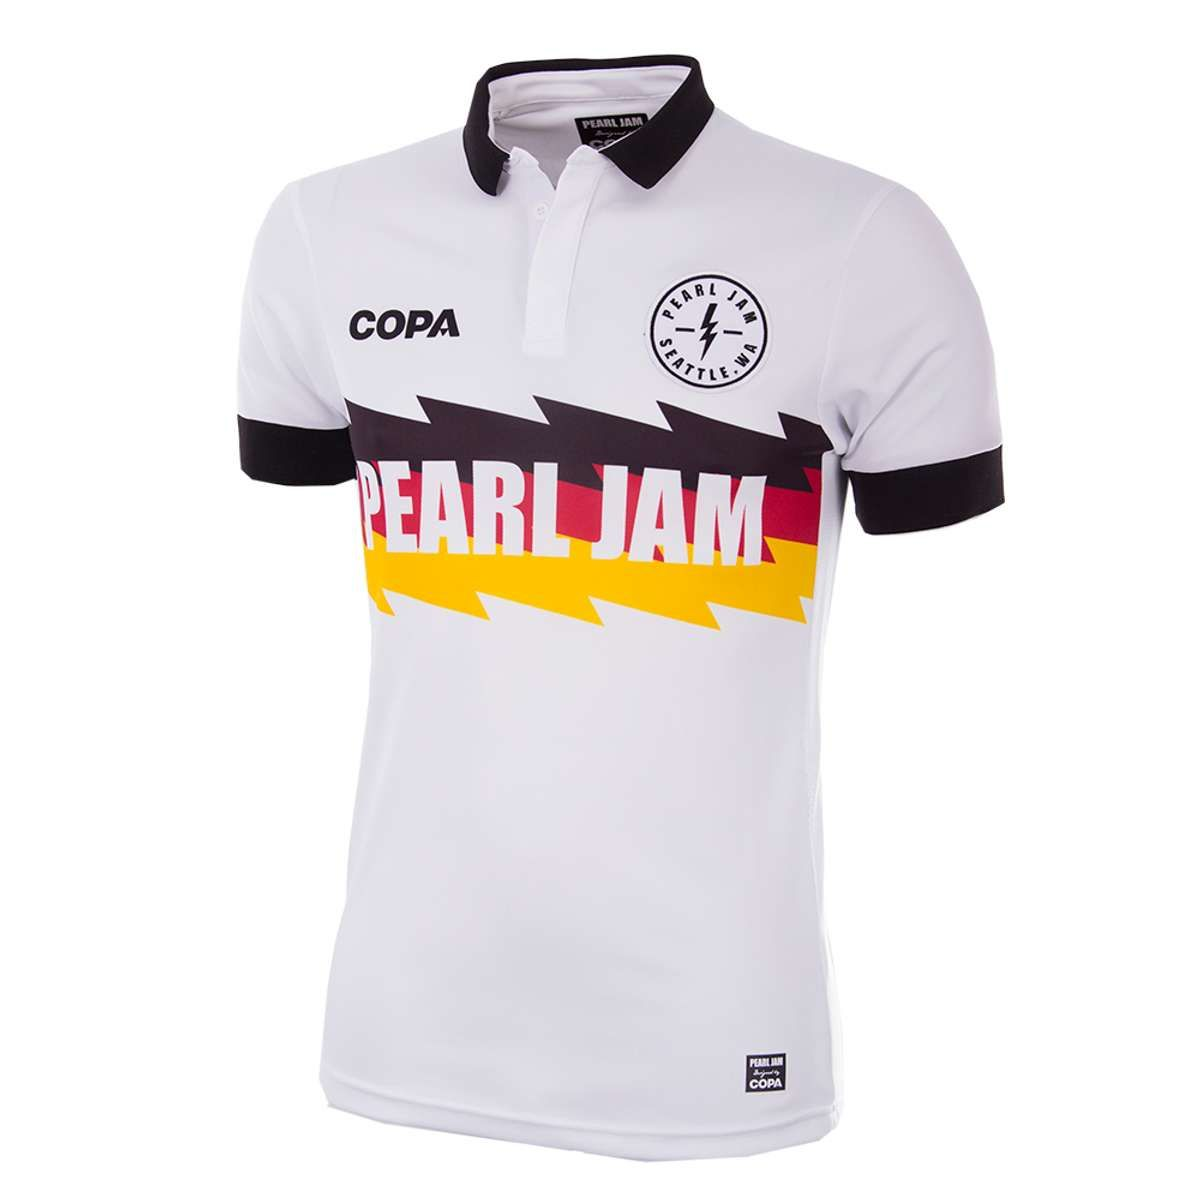 Germany – Soccer Shirt - Pearl Jam